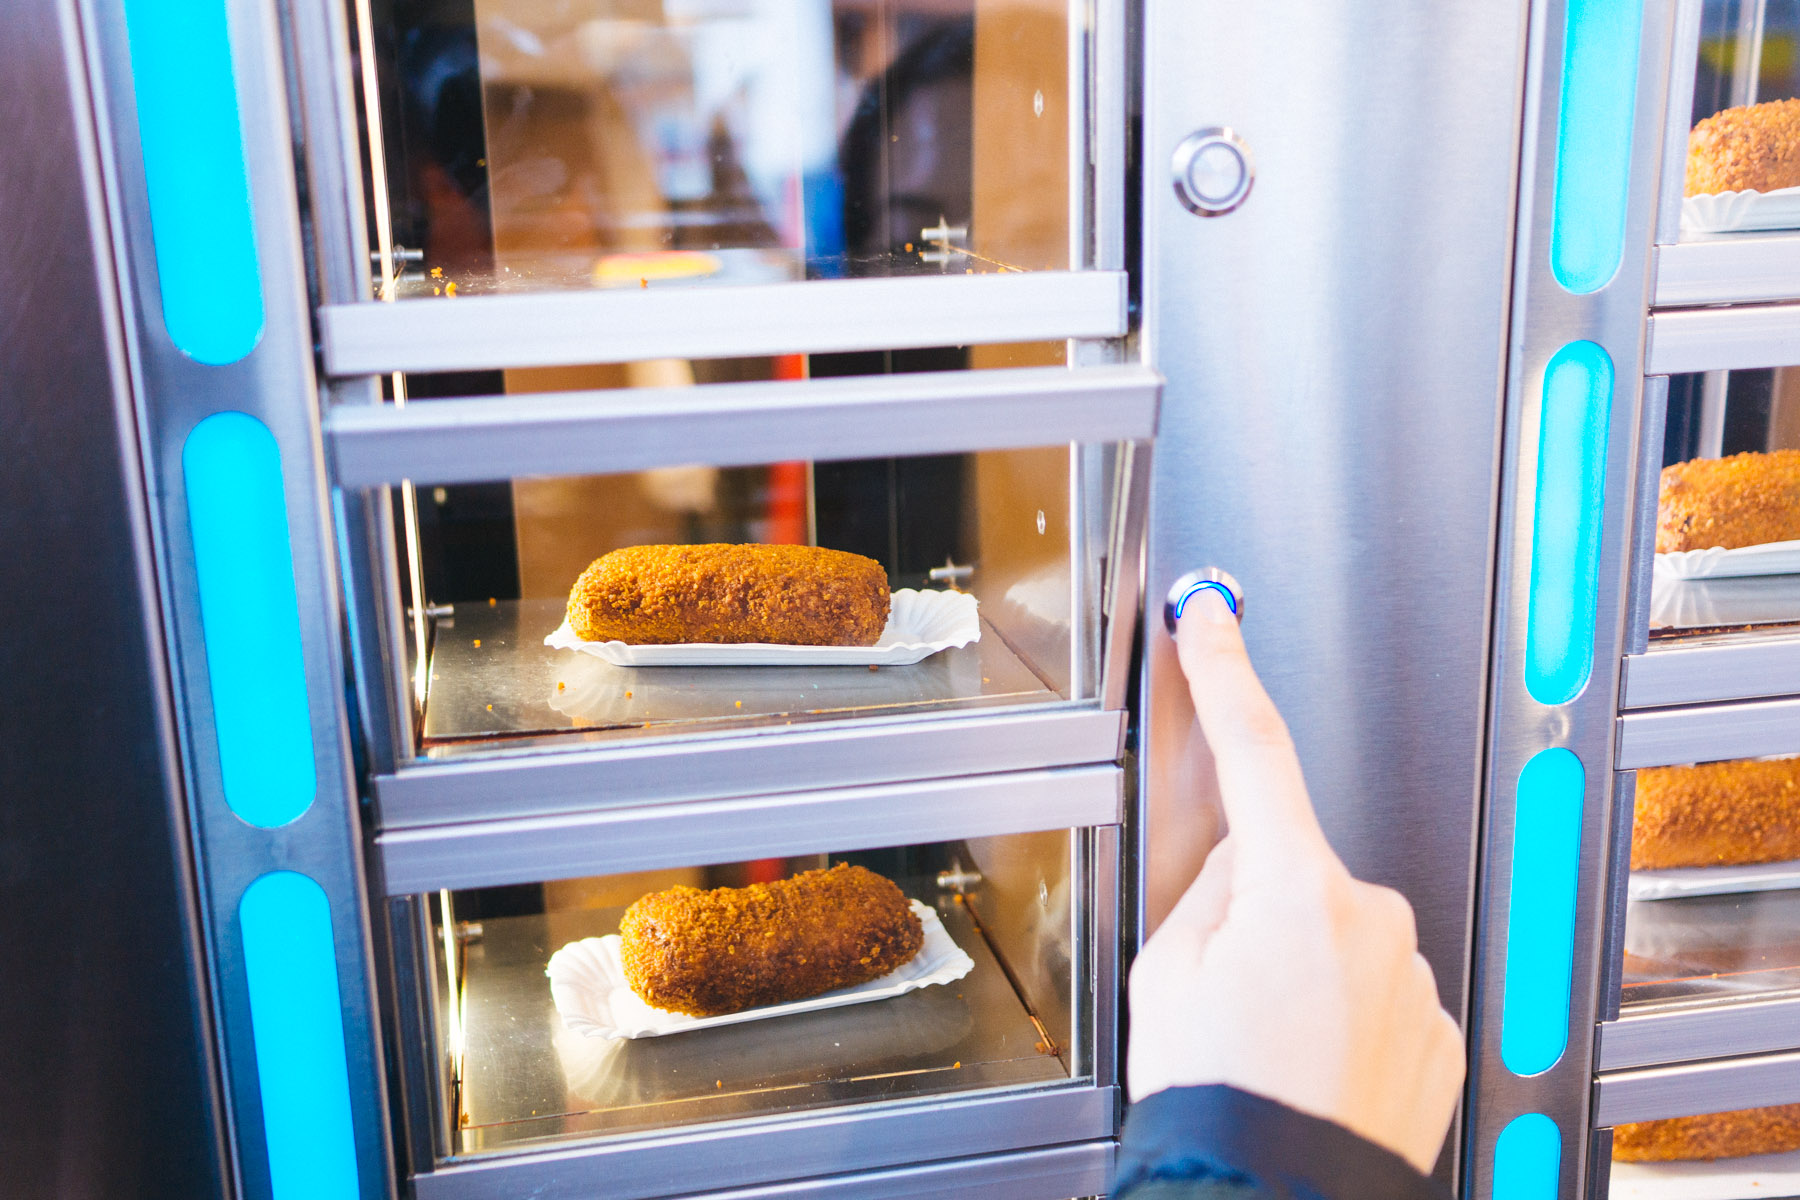 Fast In German >> Febo vs Smullers: Fast Food Vending Machines in Amsterdam, Netherlands | That Food Cray